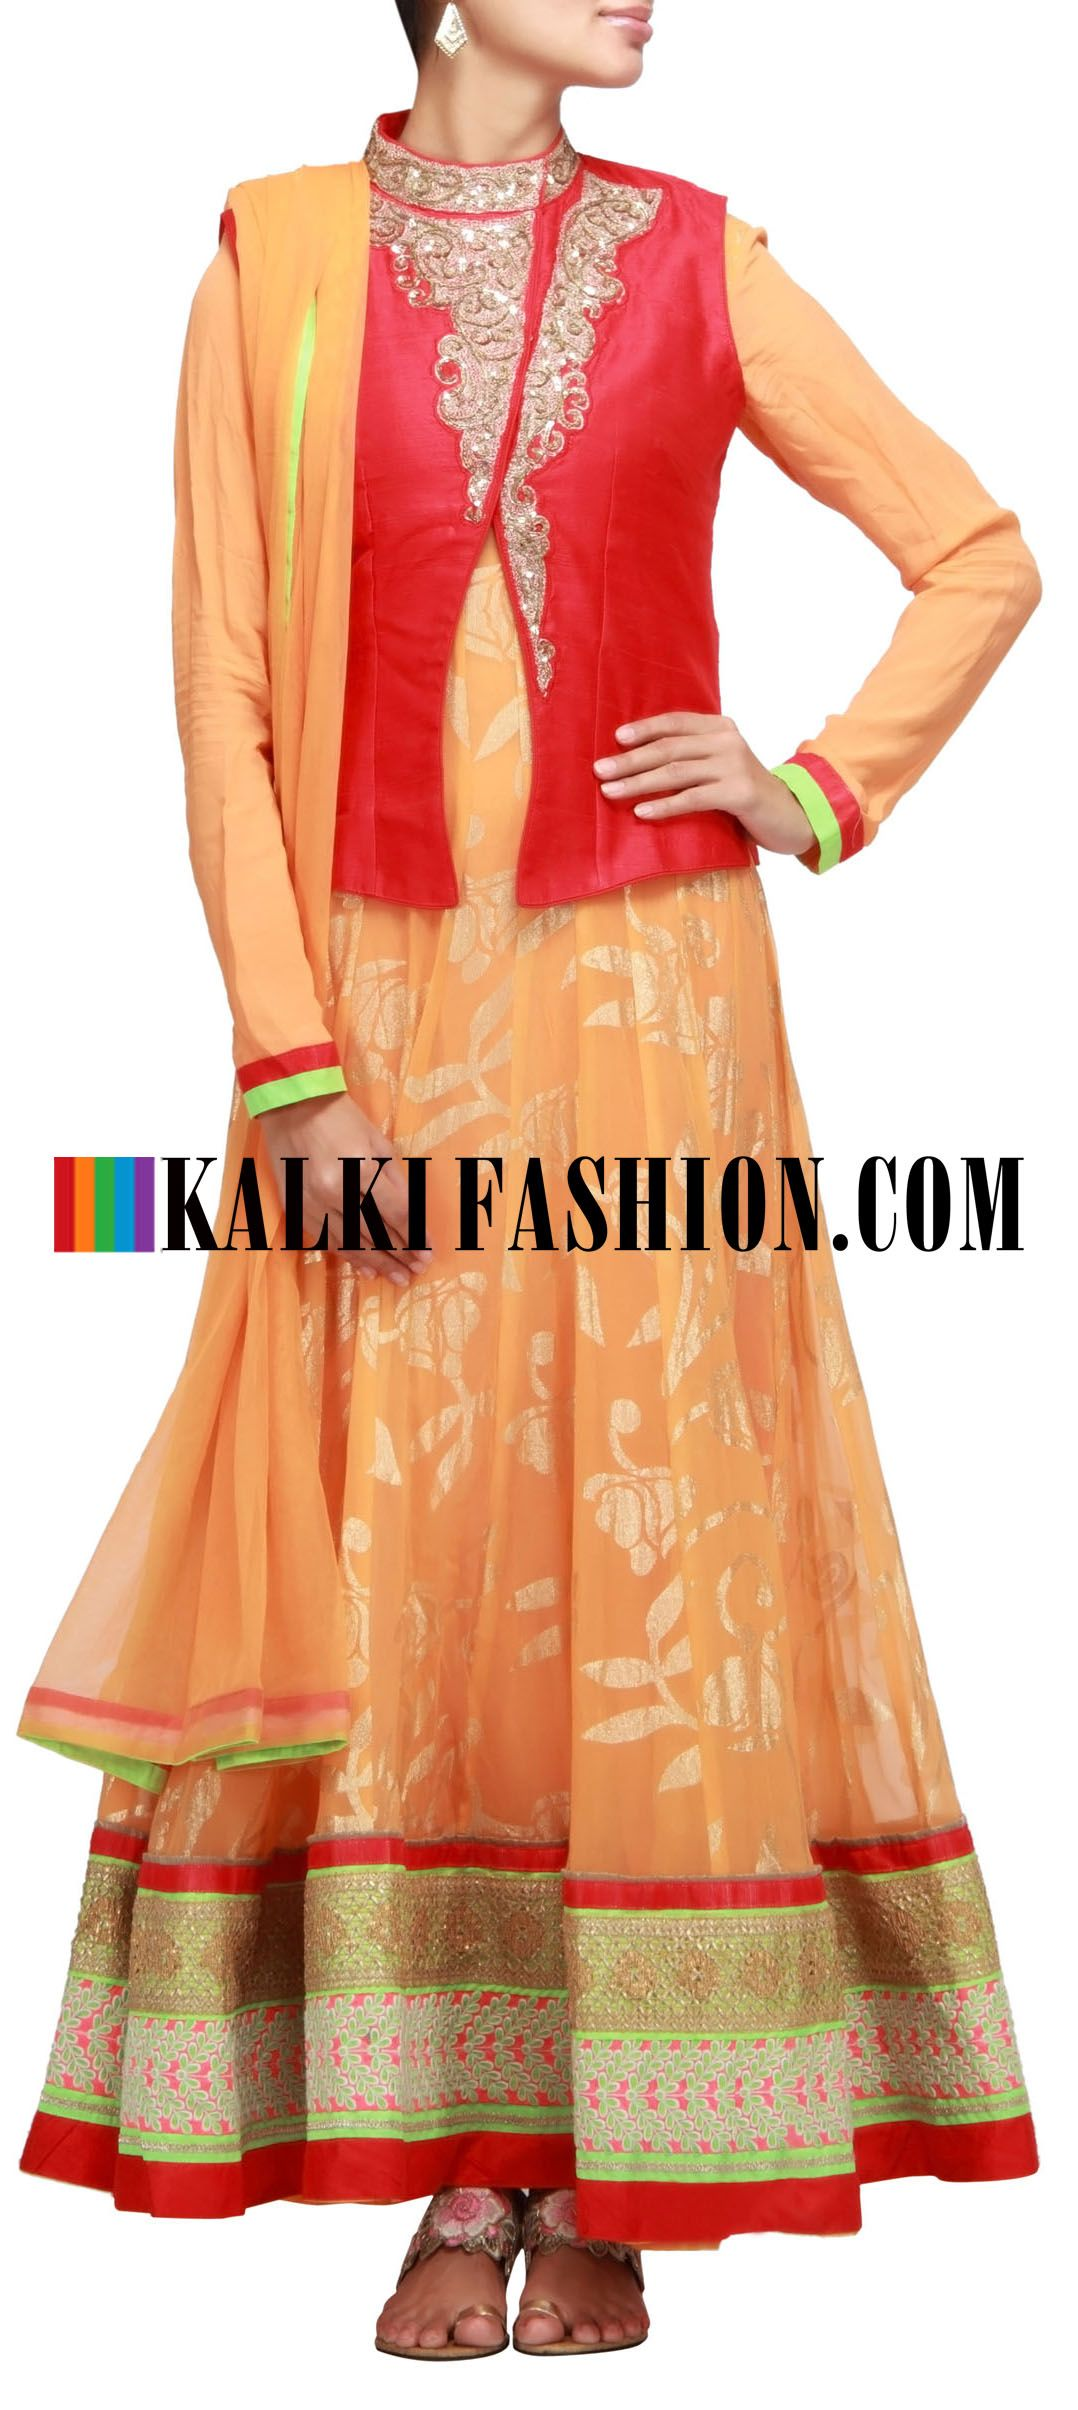 Buy Online from the link below. We ship worldwide (Free Shipping over US$100) http://www.kalkifashion.com/anarkali-suit-in-orange-with-foil-print-and-gotta-patti-lace.html Anarkali suit in orange with foil print and gotta patti lace